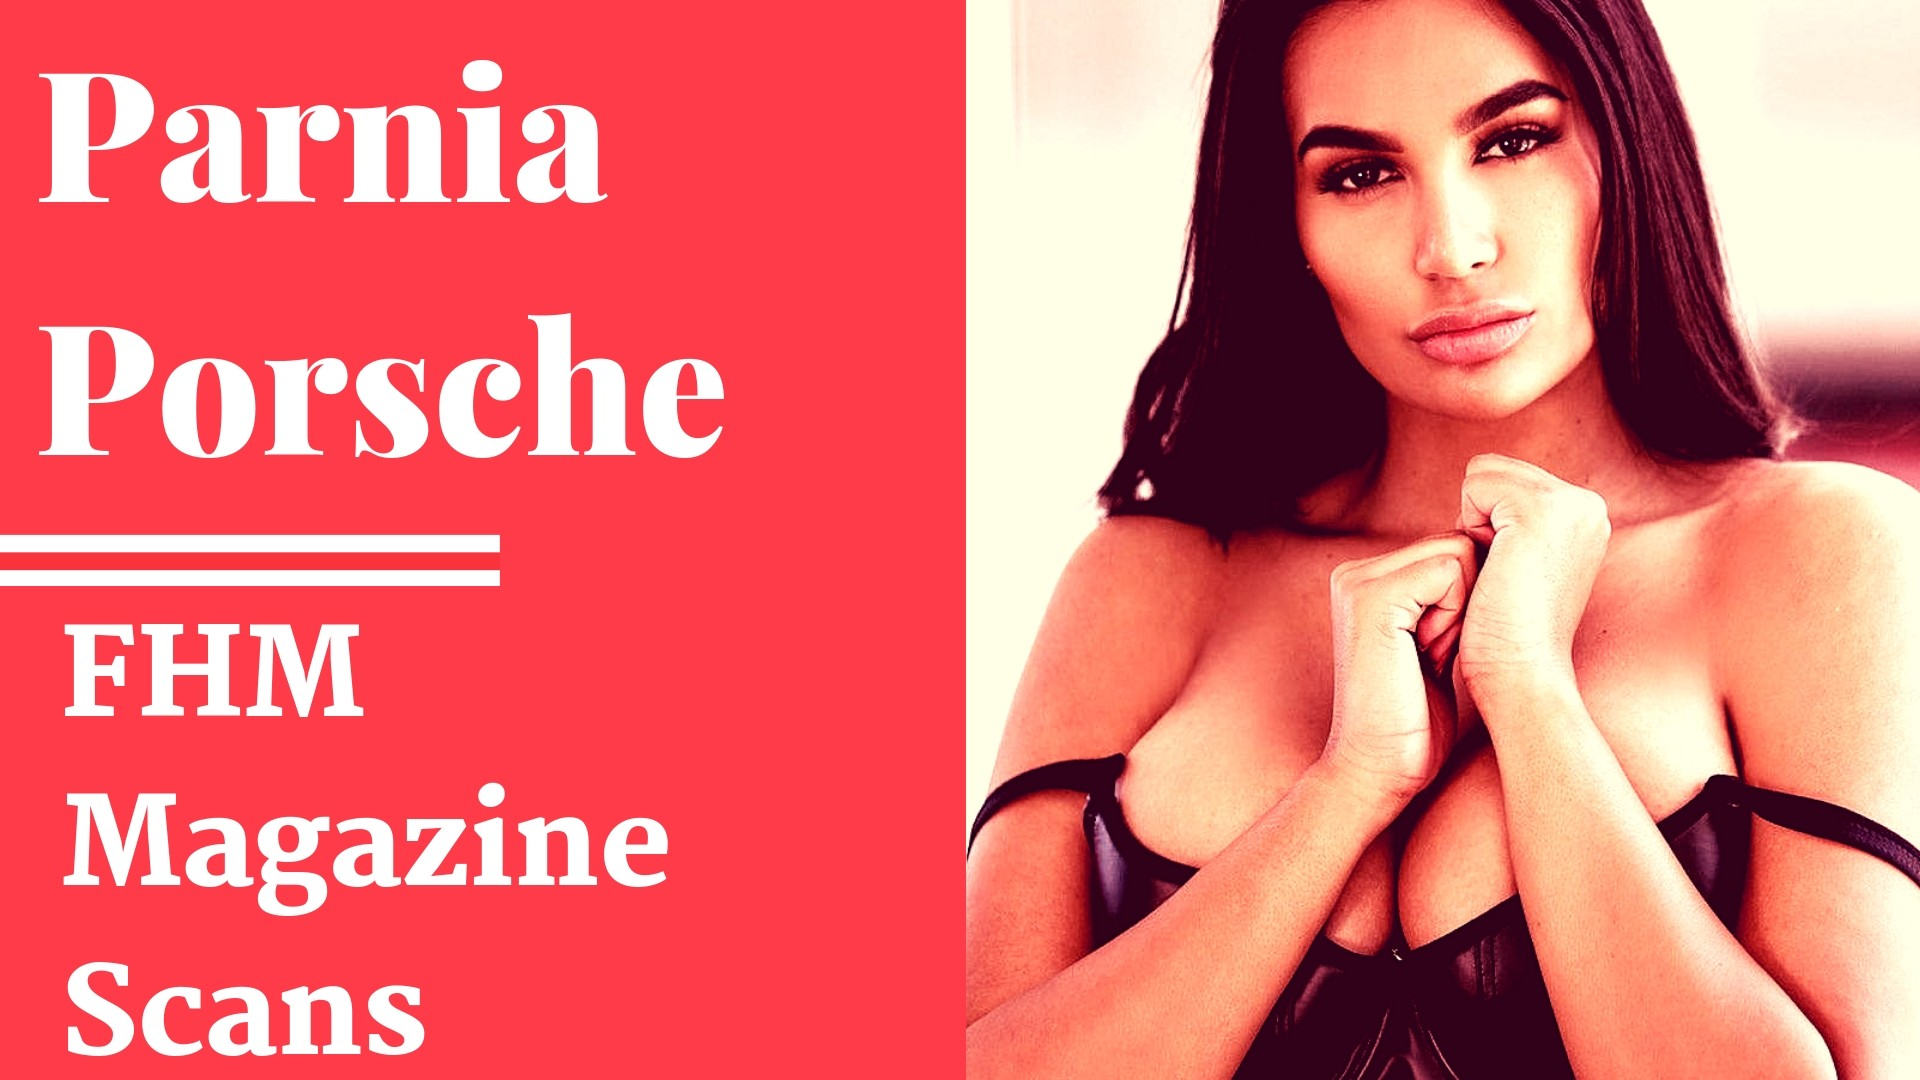 Parnia Porsche - FHM Magazine Scans - Sexy Actress Pictures | Hot Actress Pictures - ActressSnaps.com